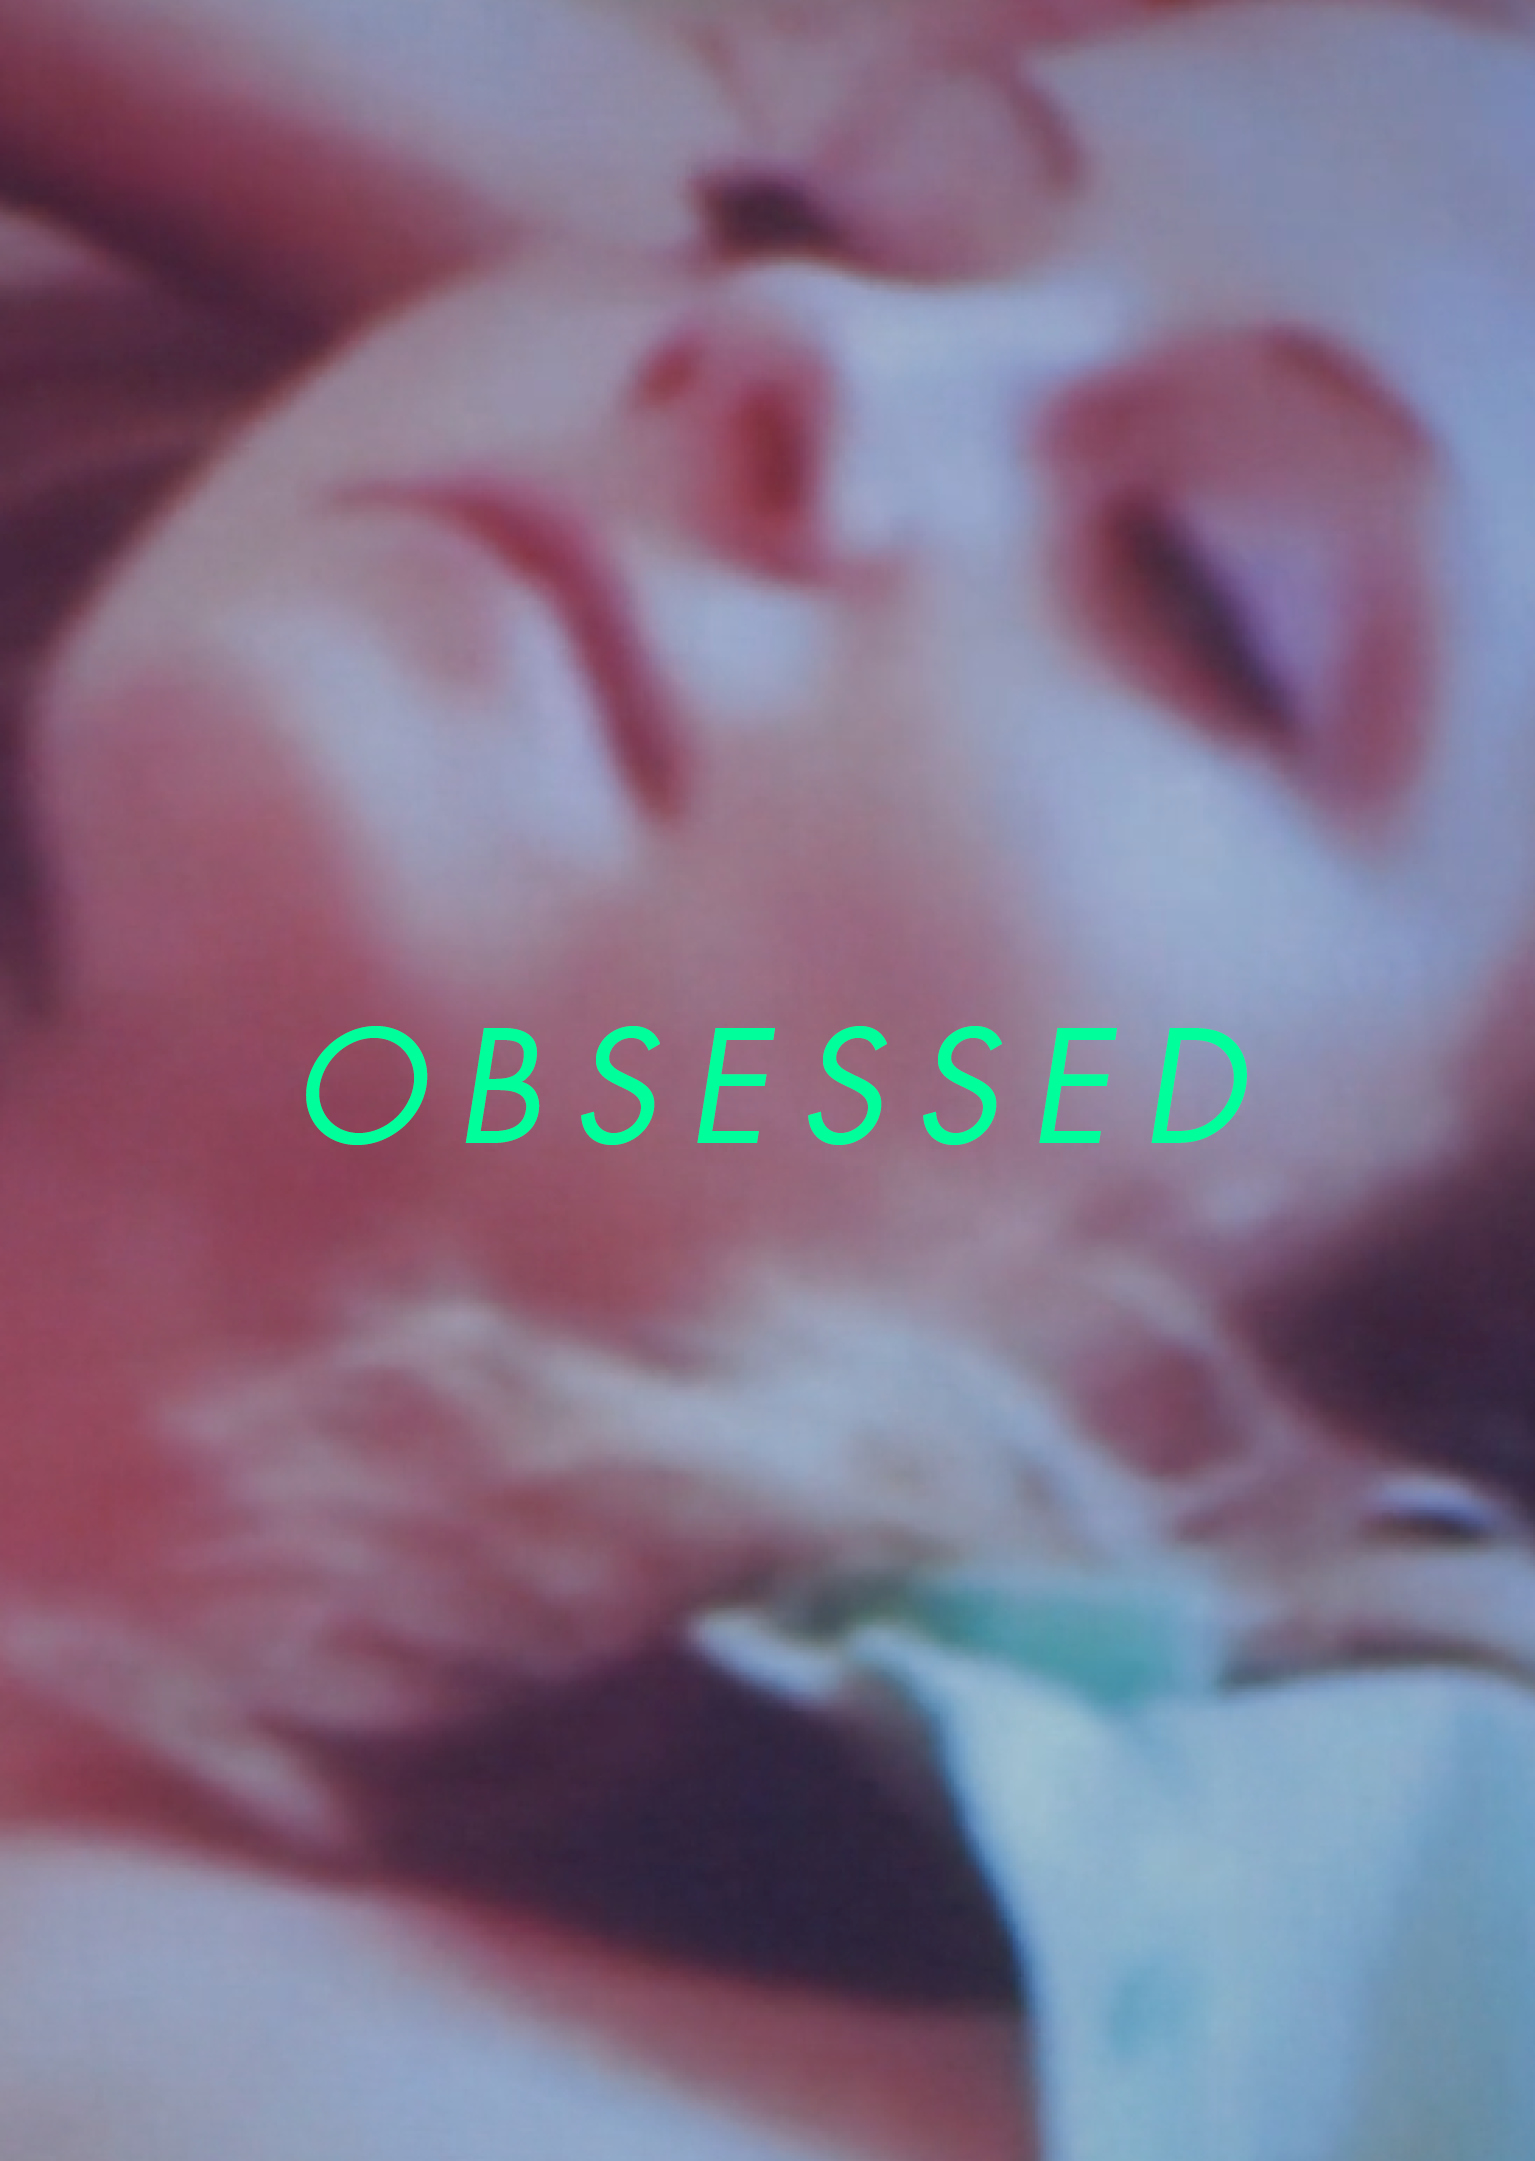 Xconfessions By Erika Lust, Obsessed